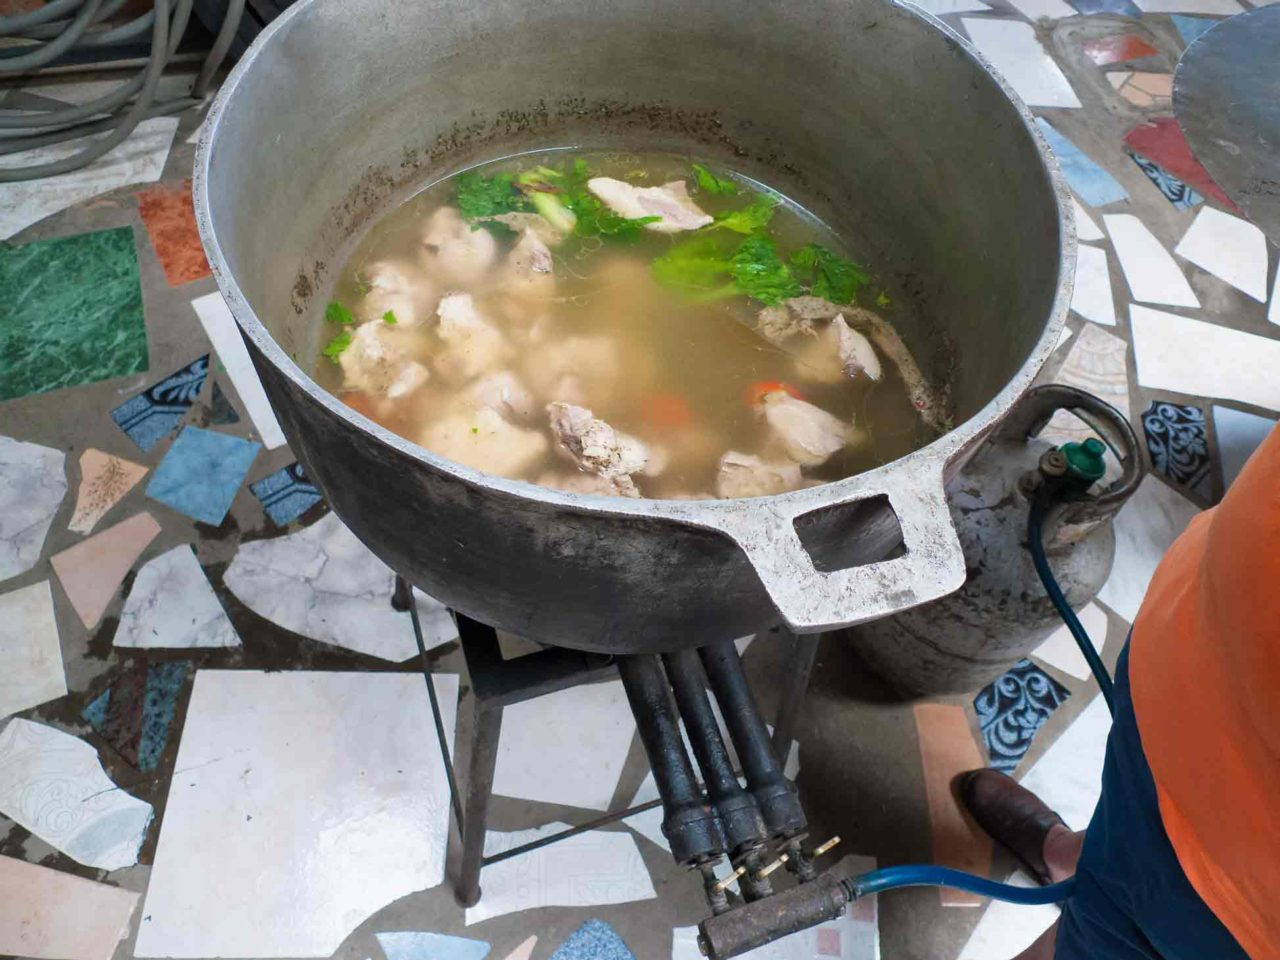 Costa Rican Tamales - cooking the pork and making the broth for the tamales. Recipe with photos